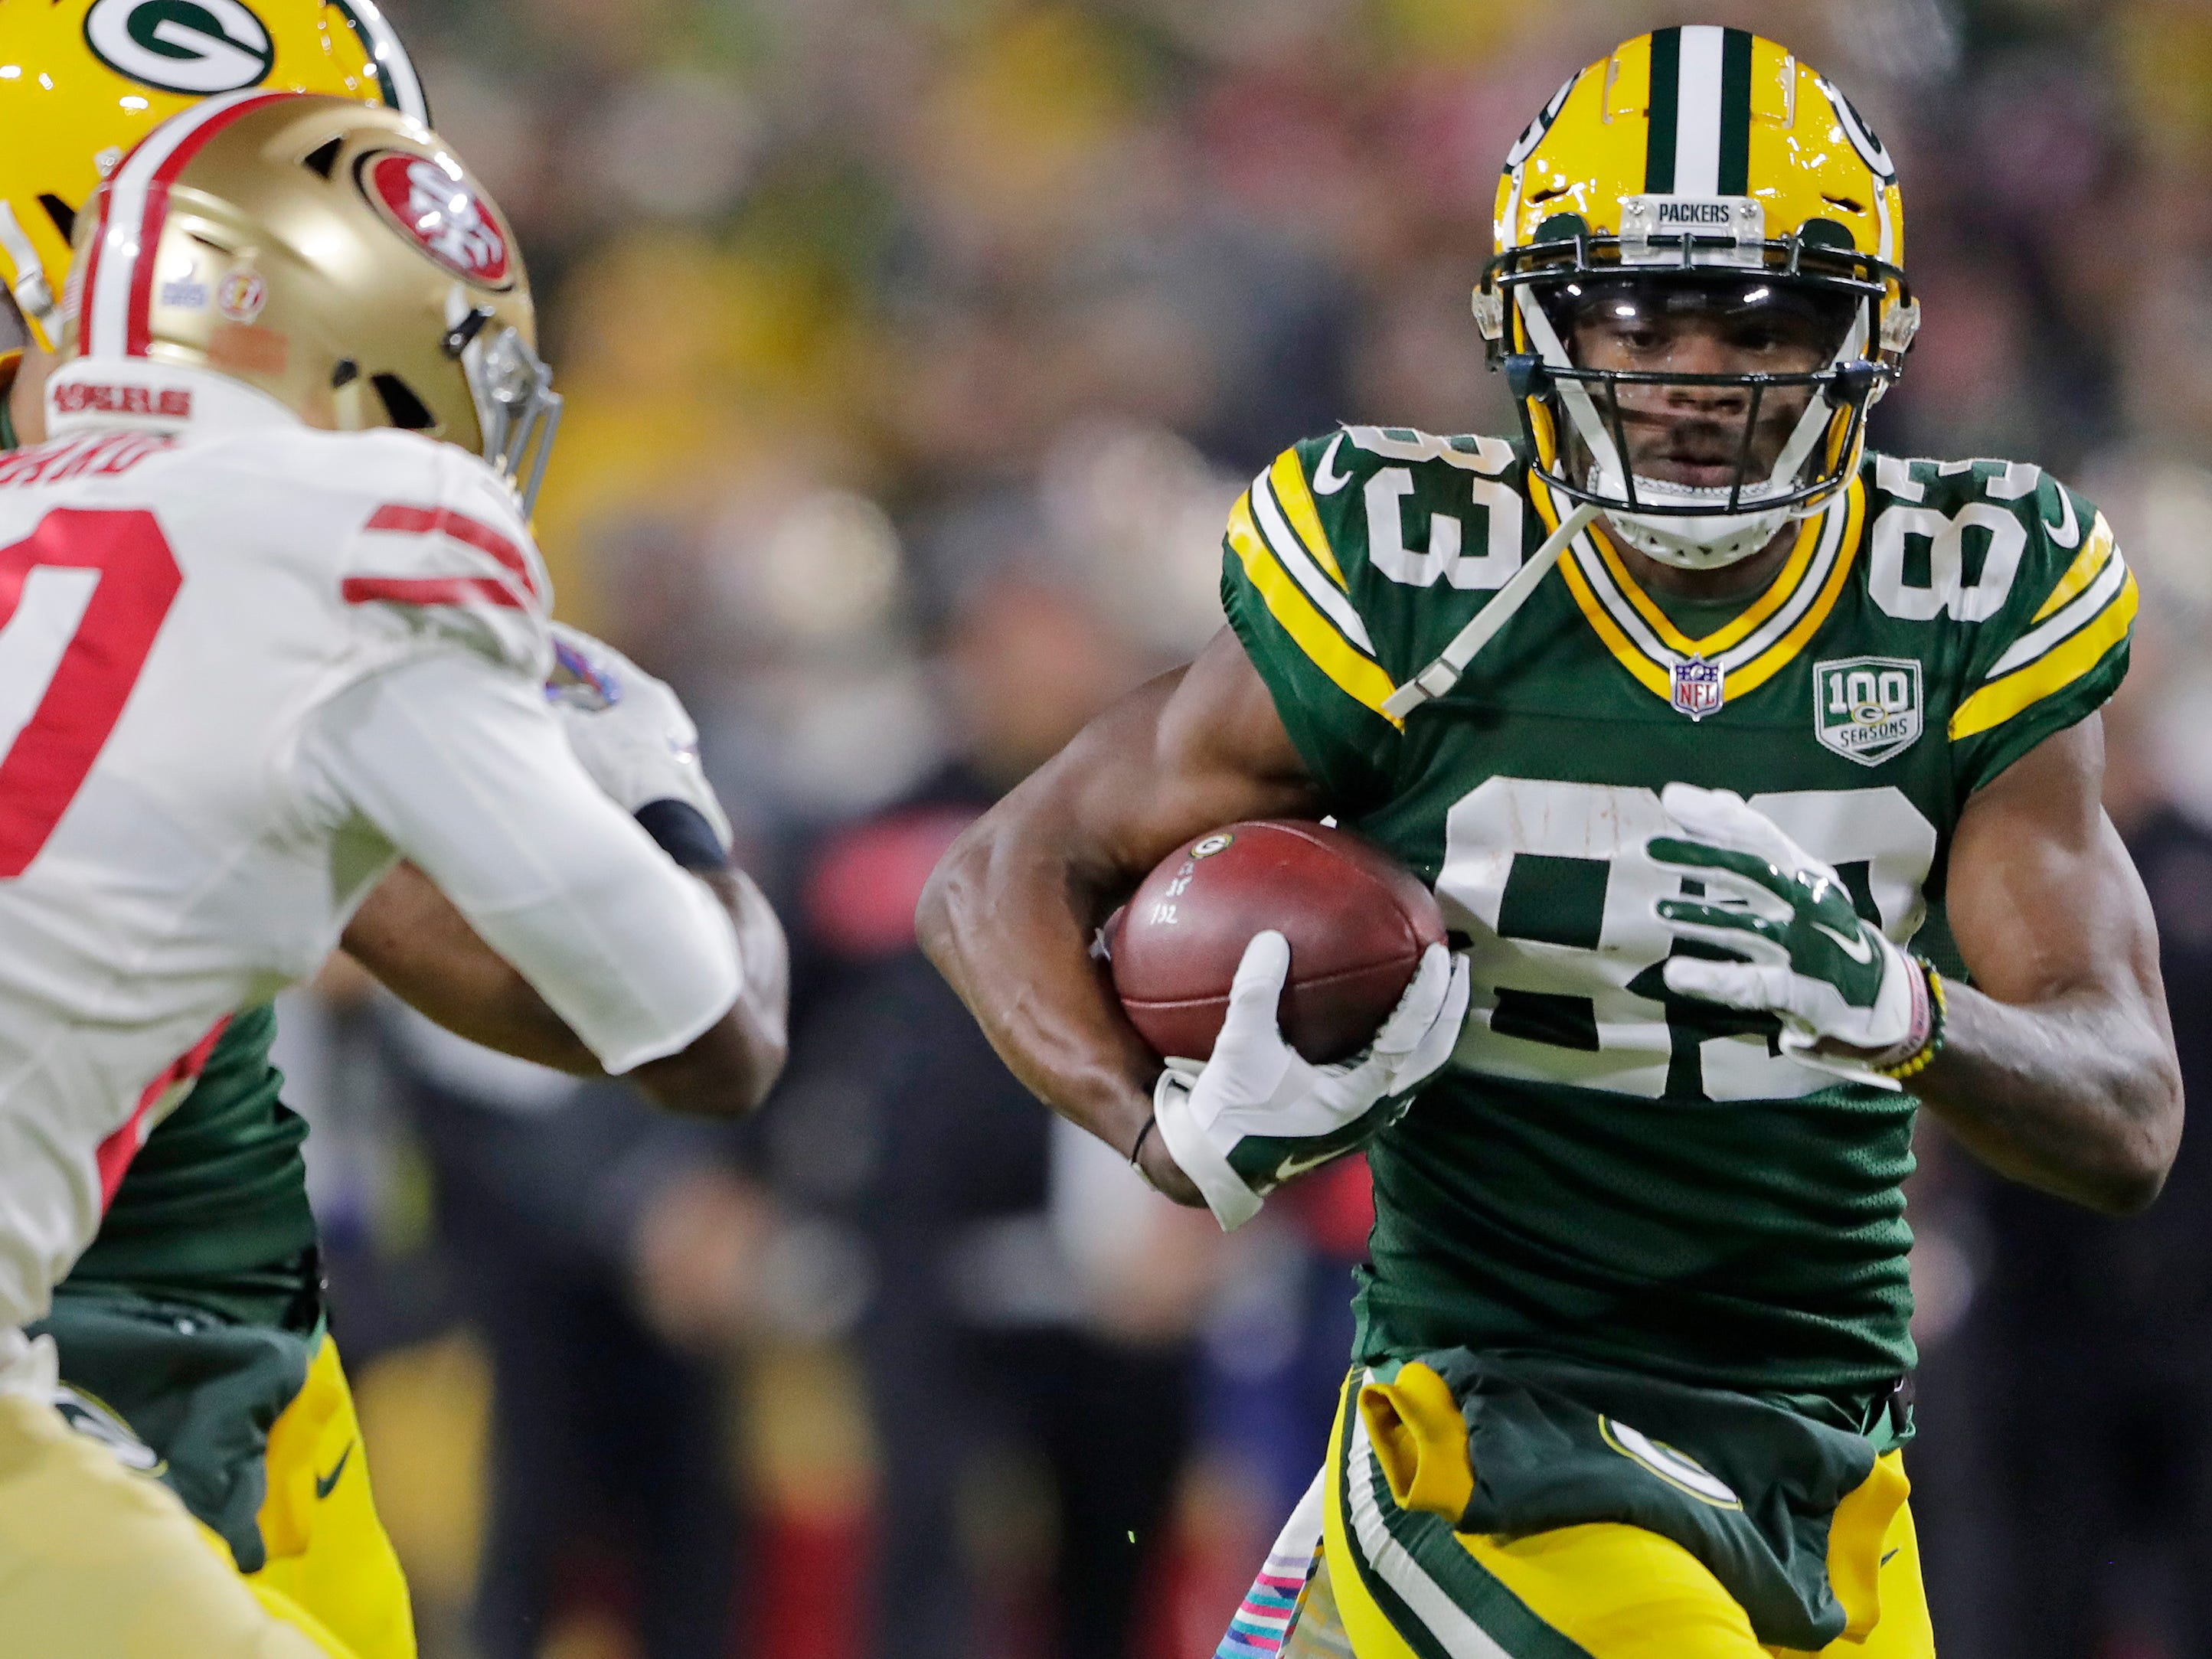 Green Bay Packers wide receiver Marquez Valdes-Scantling (83) runs after a catch against the San Francisco 49ers in the first quarter at Lambeau Field on Monday, October 15, 2018 in Green Bay, Wis.